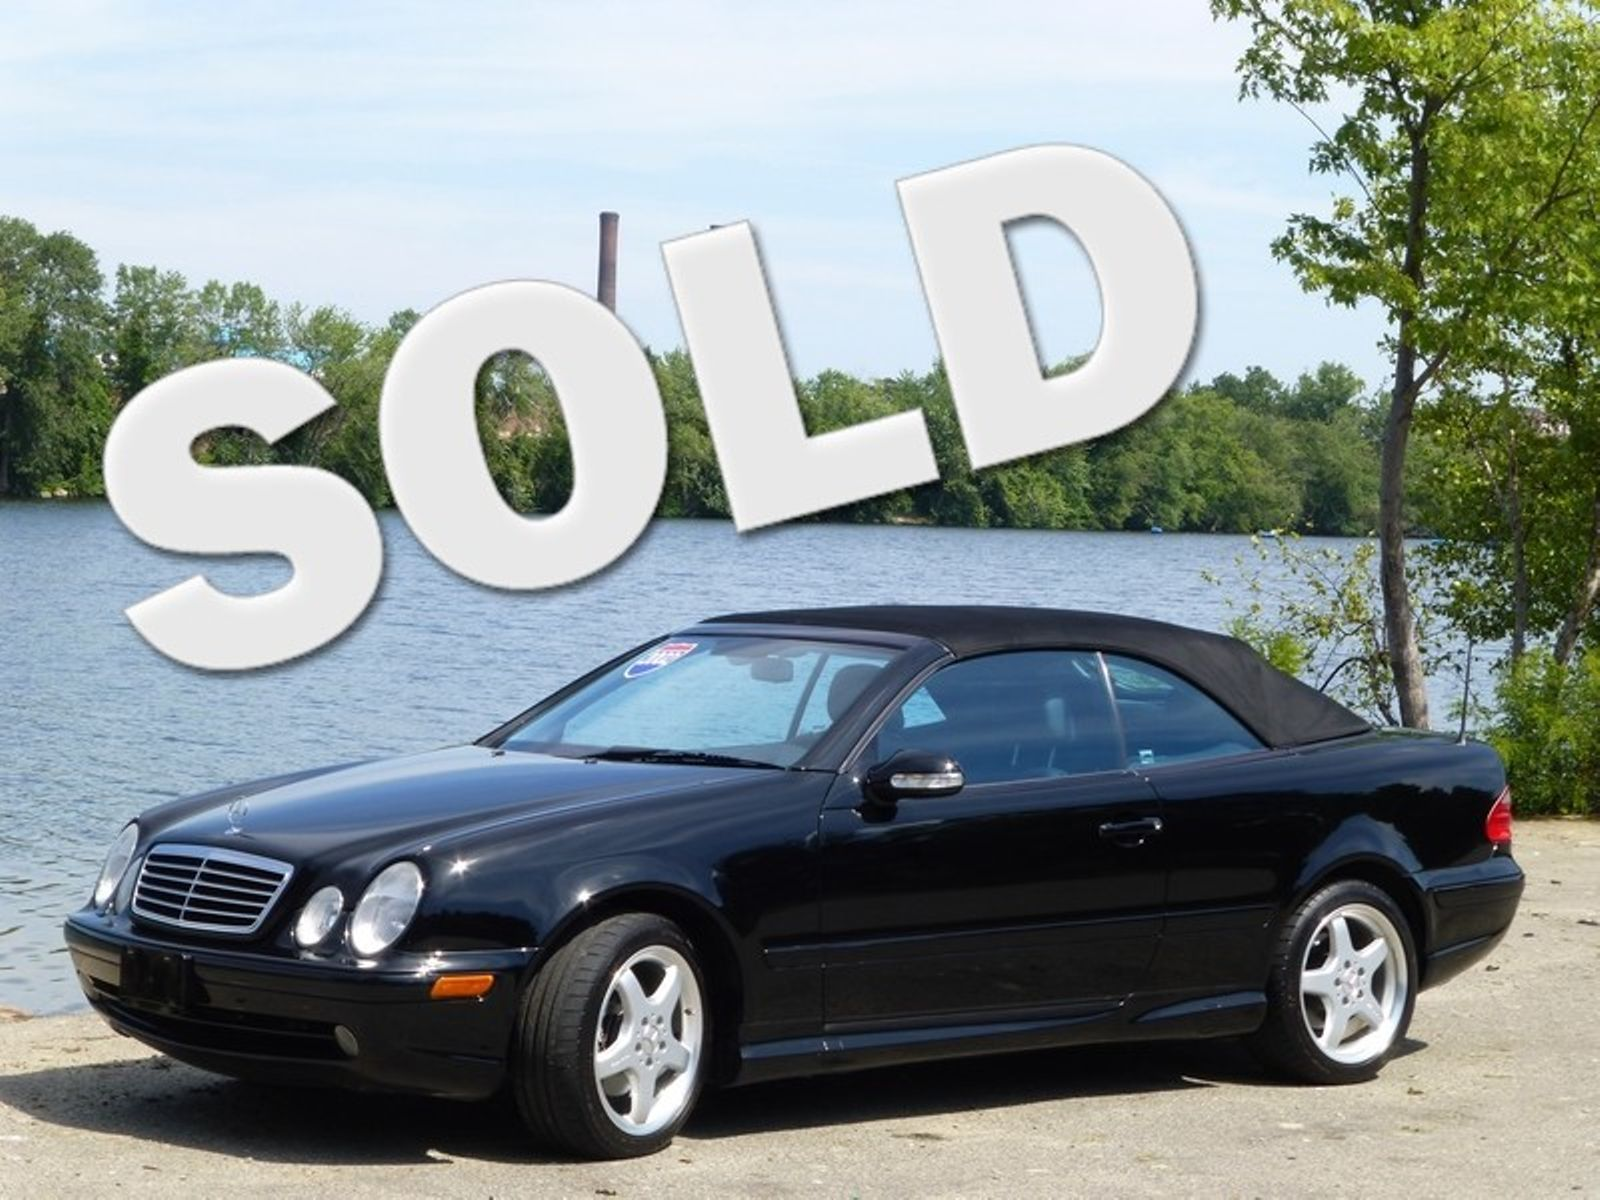 2002 mercedes benz clk430 call 978 828 8080 city ma for Call mercedes benz